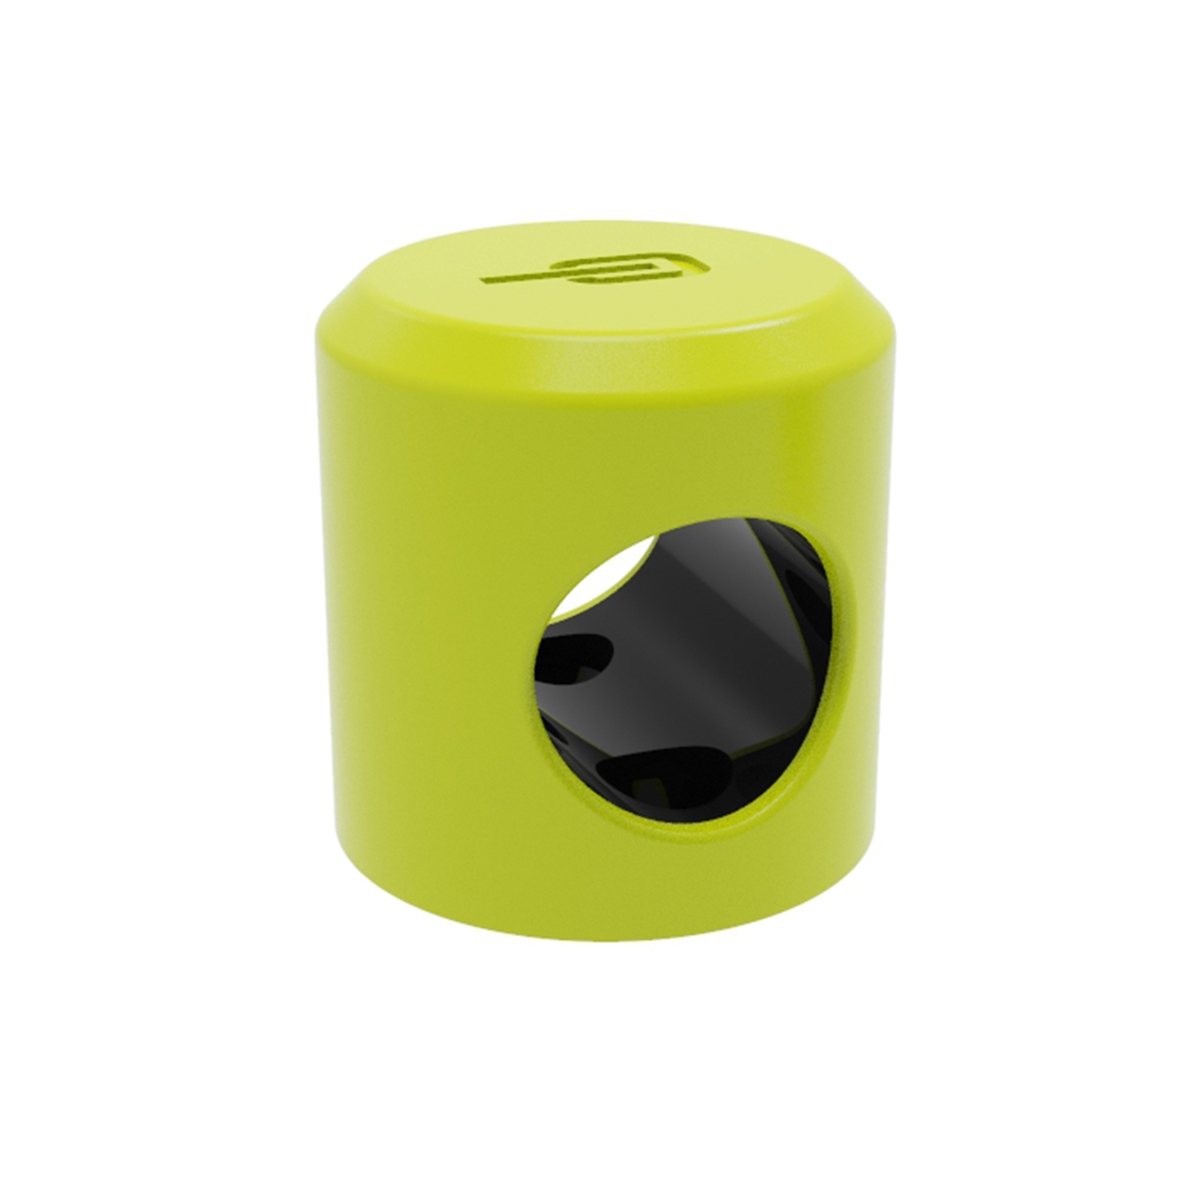 Ankr Mini Wall/Ground Anchor for Bikes and Scooters Yellow